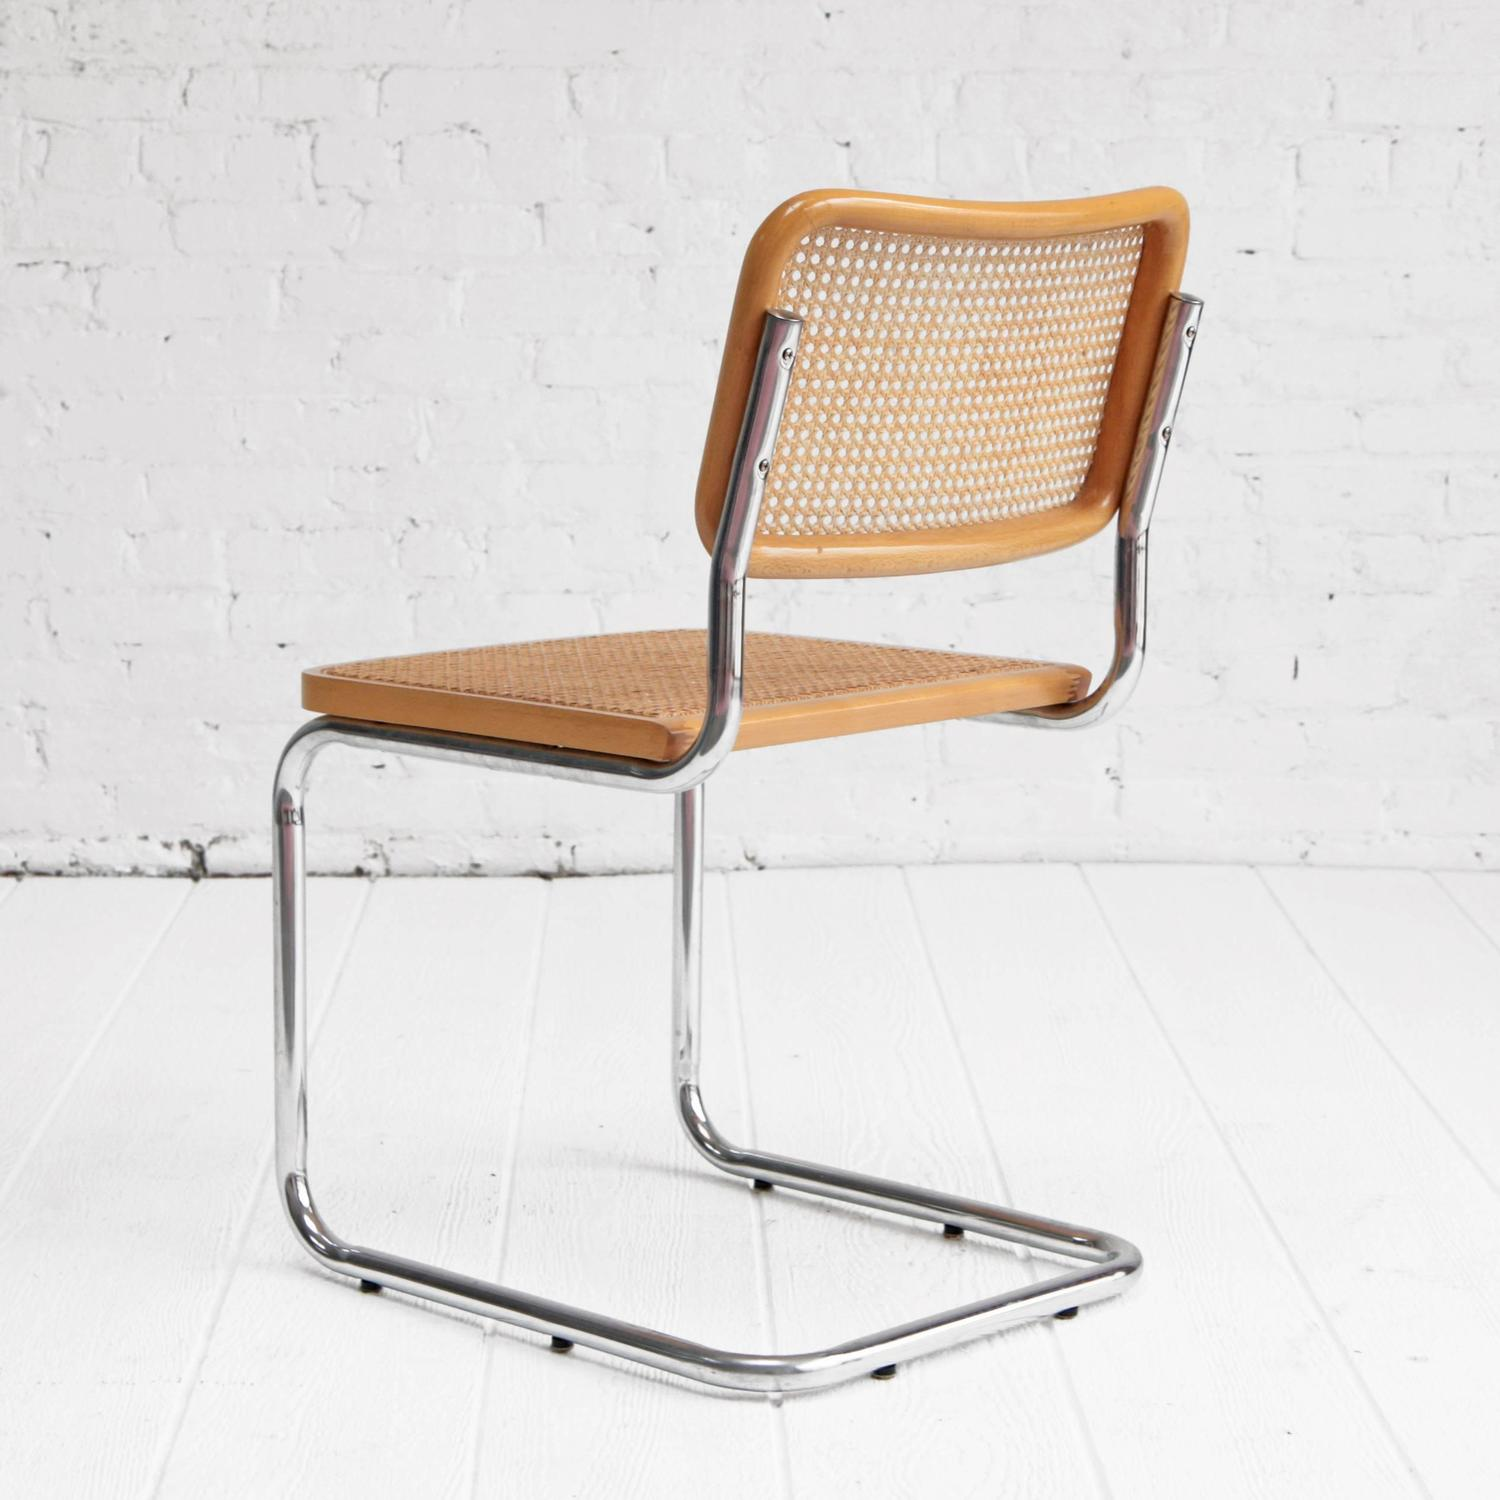 cesca chair replacement seats uk table high marcel breuer 39cesca 39 chairs chrome and cane dining